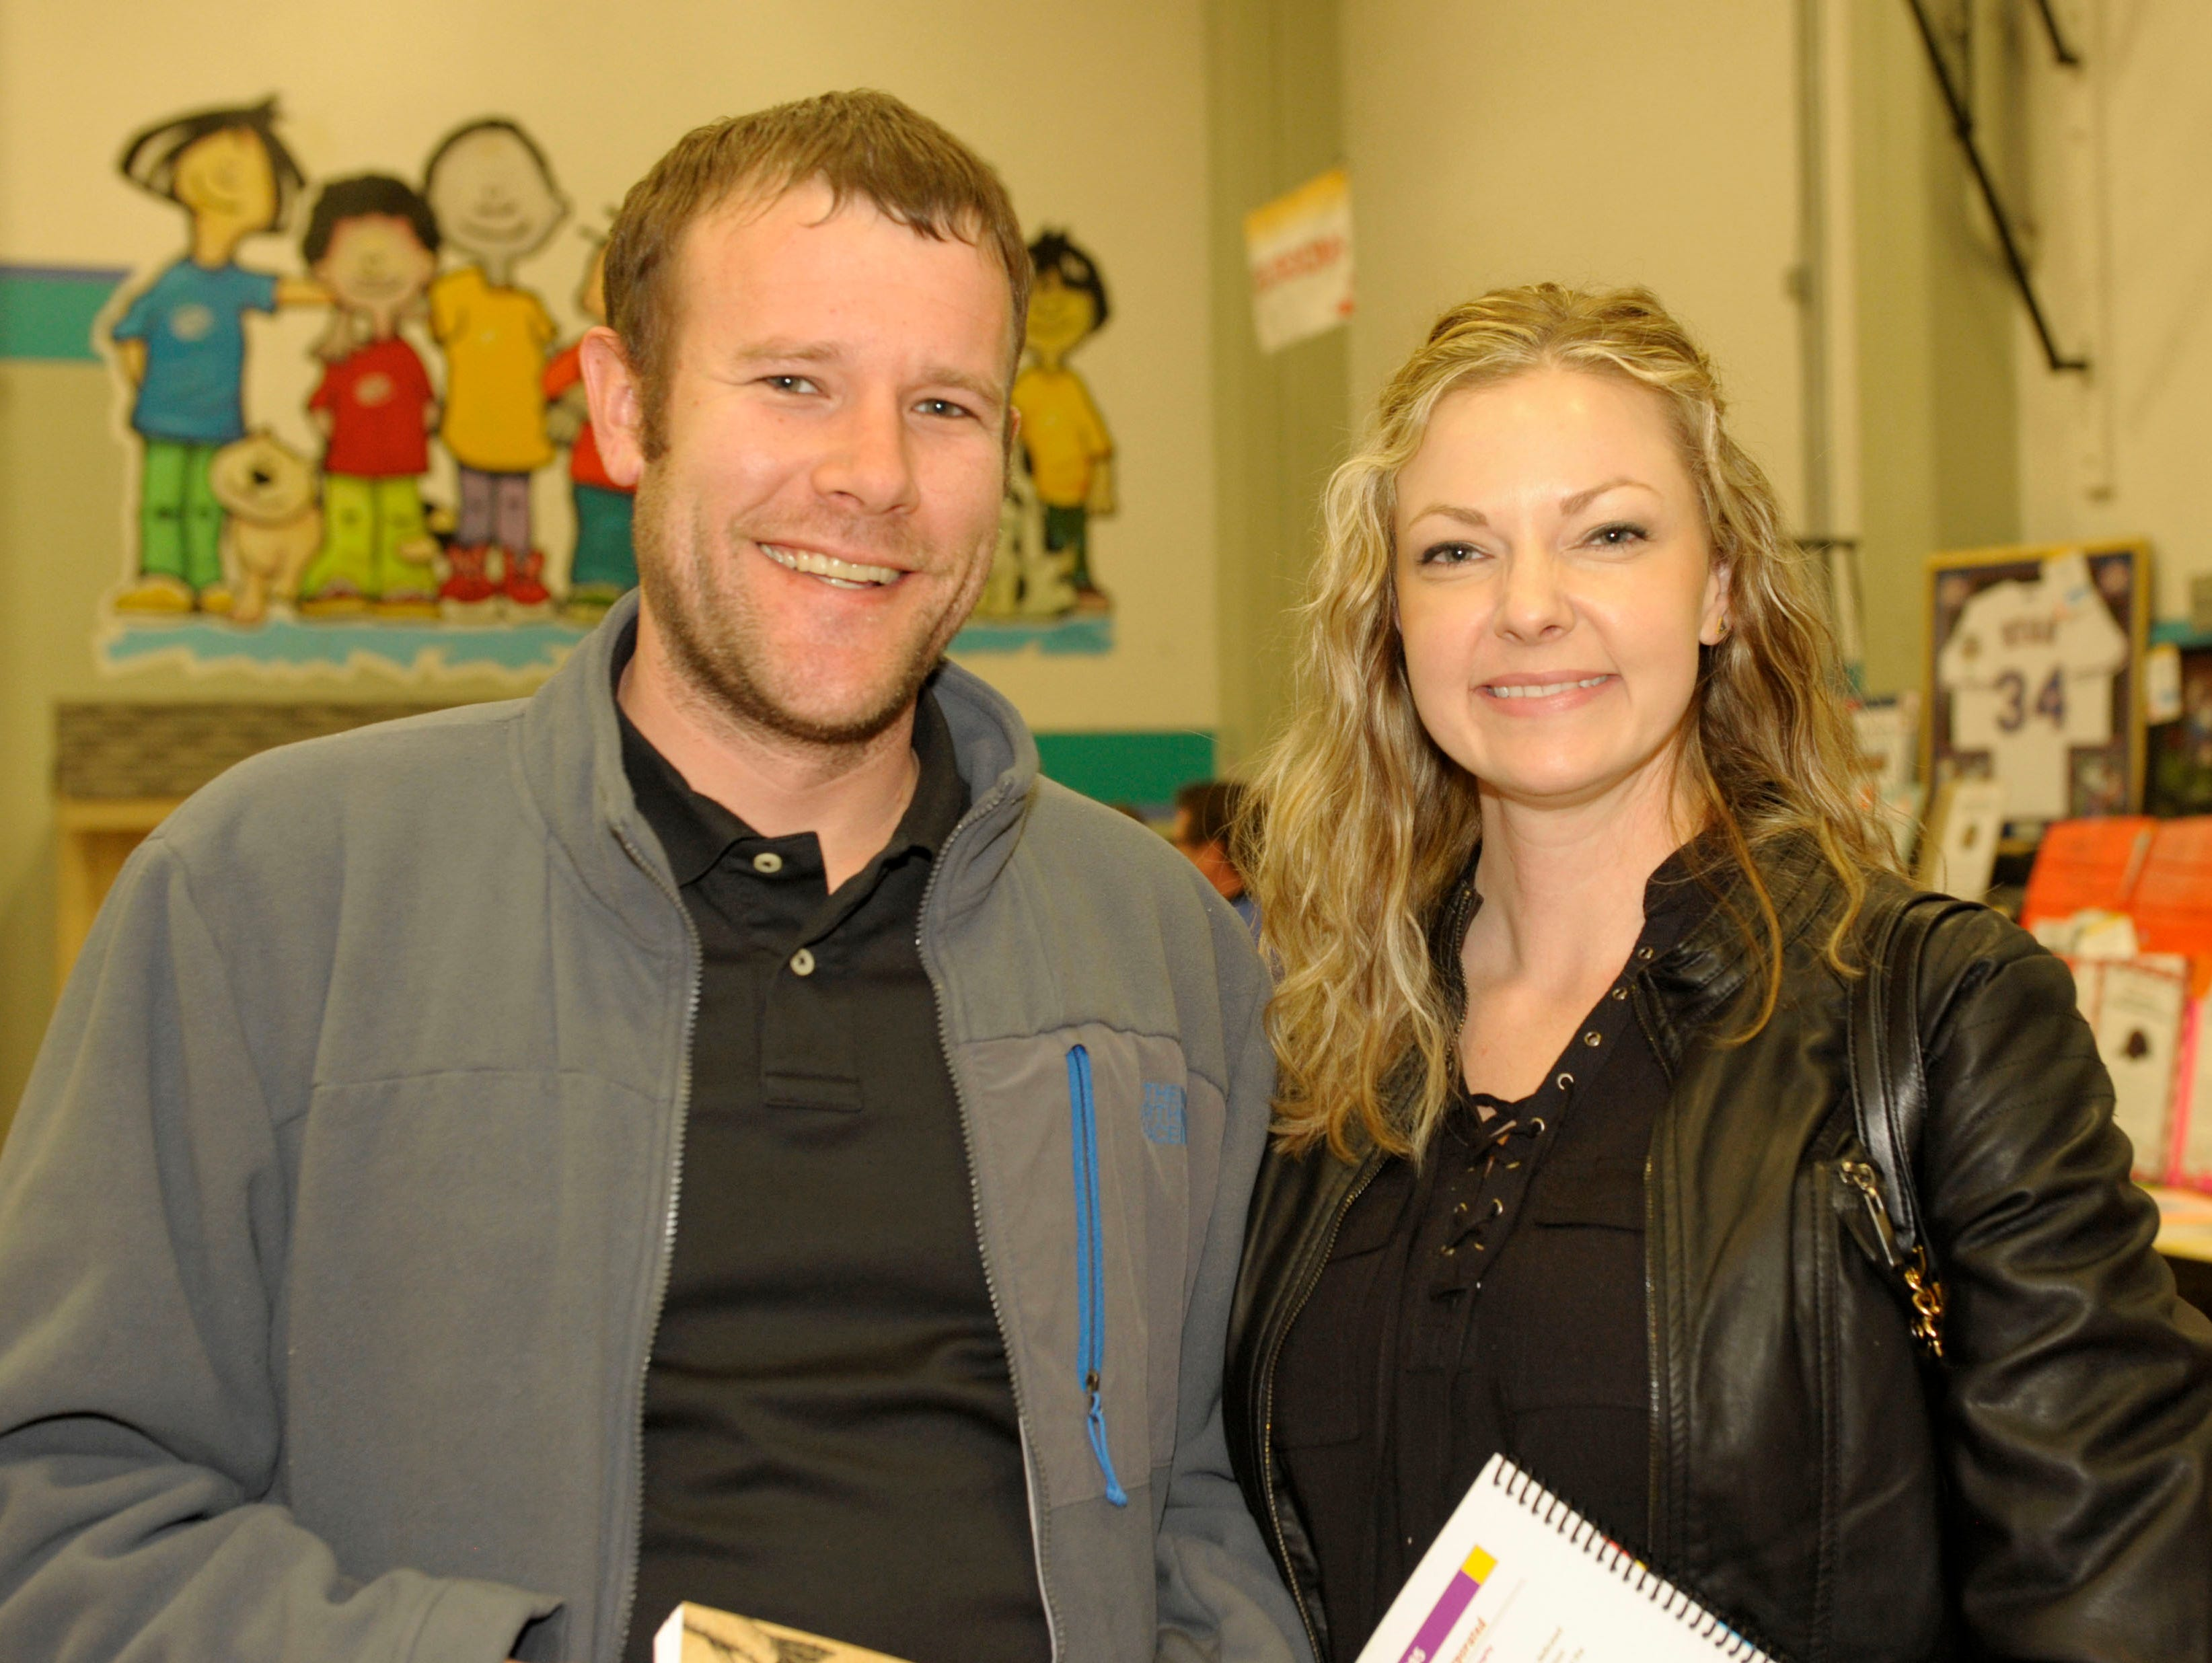 Zach Brown and Gloria Sosnowski attend the 39th Annual Jack T. Reviglio Cioppino Feed and Auction at the Boys & Girls Club of Truckee Meadows Sat., Feb. 23, 2019. Photos by Lisa J. Tolda/Special to the RGJ.